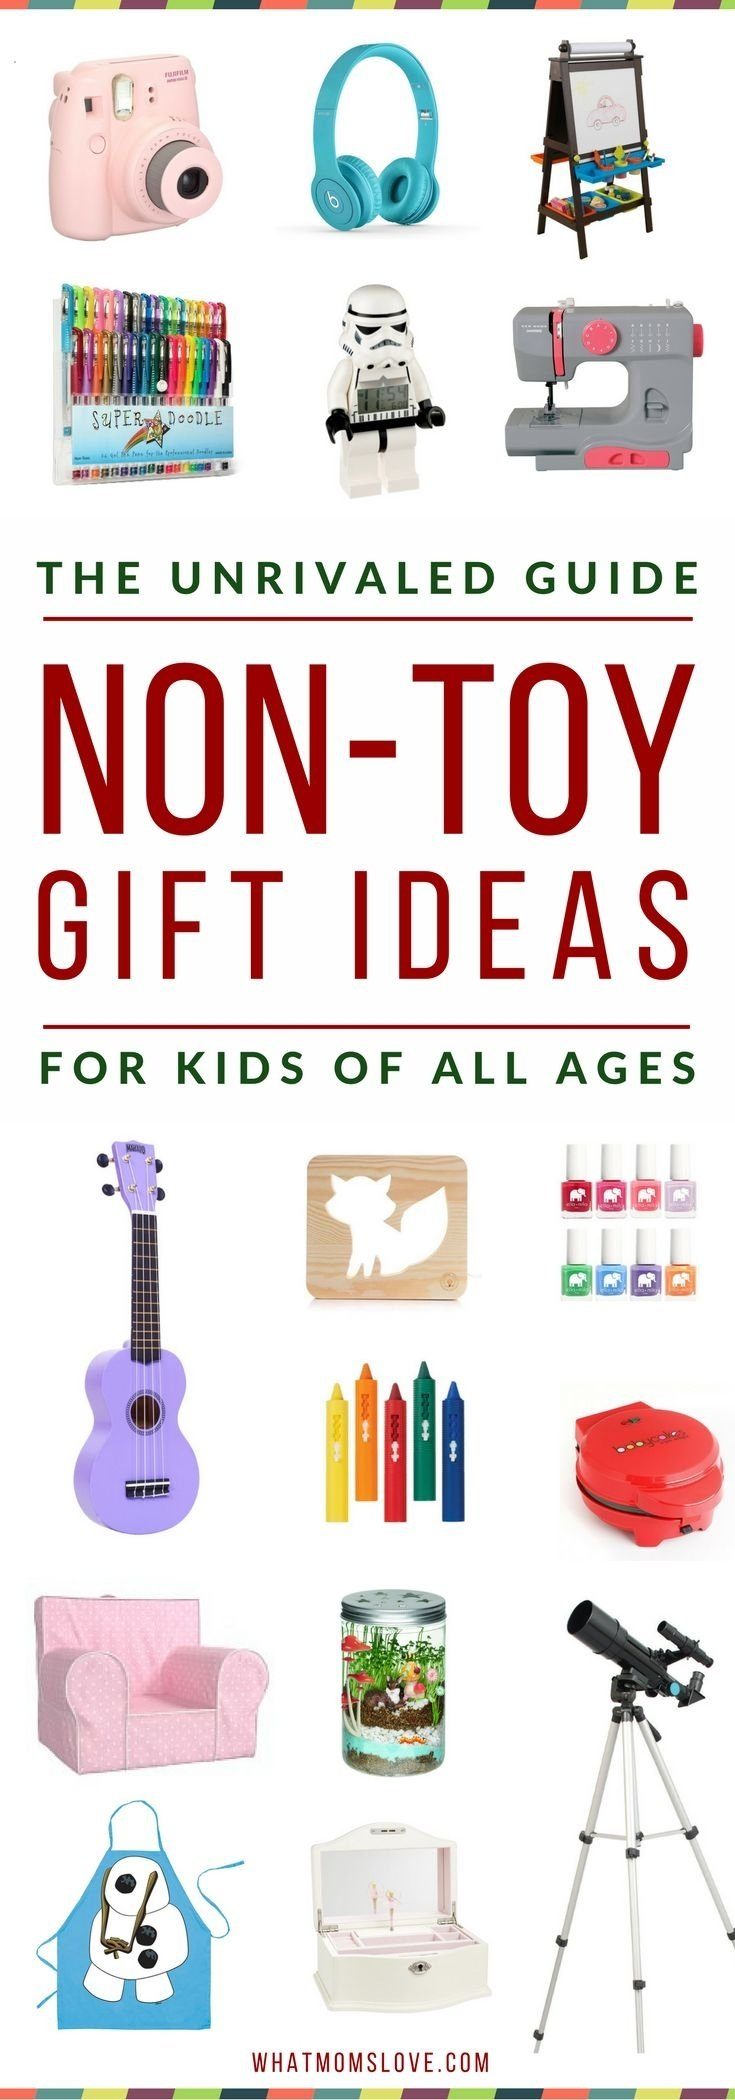 10 Gorgeous Christmas Gift Ideas For Toddlers 29 best gift guide age 8 images on pinterest christmas gift ideas 1 2021